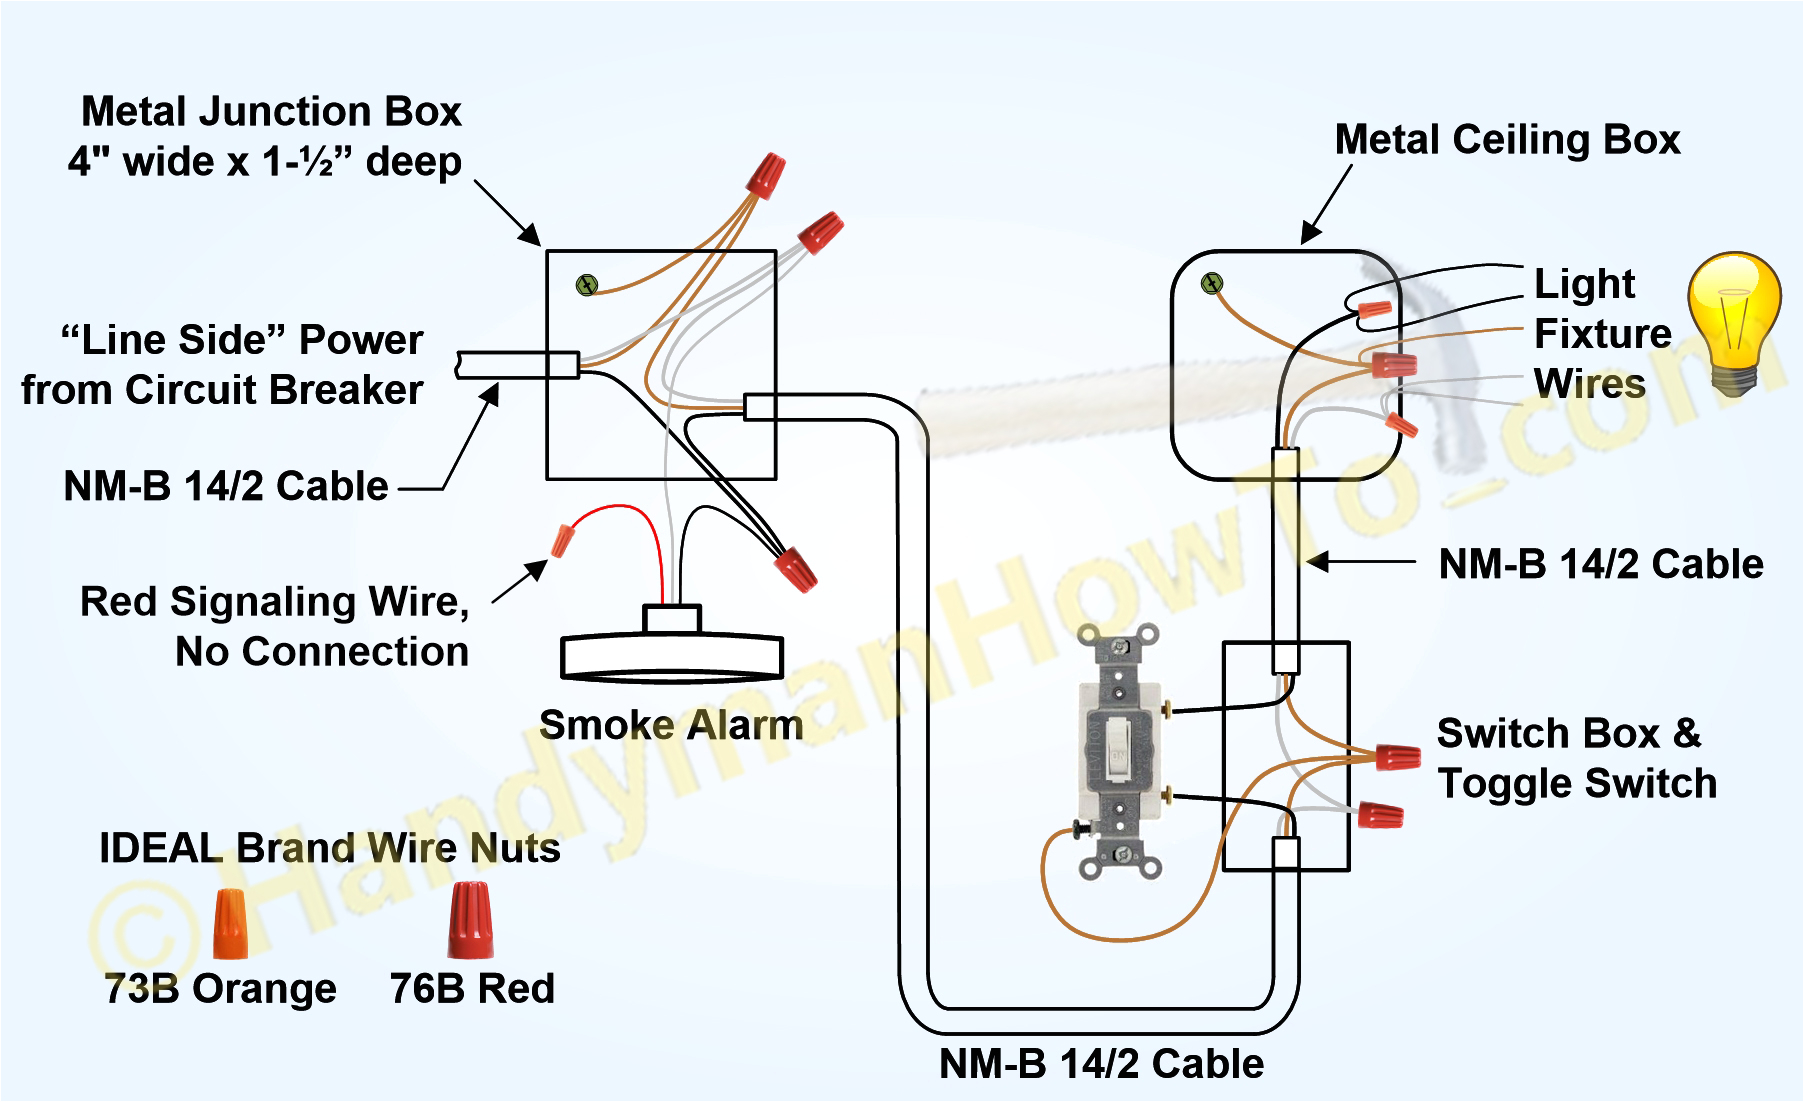 2151 Smoke Detector Wiring Diagram. 4 wire smoke detector wiring diagram  autocardesign. smoke detector 2151 wiring diagram wiring diagram tutorial.  system sensor b110lp 2 wire base for 2151 and 1151 smoke. homeA.2002-acura-tl-radio.info. All Rights Reserved.